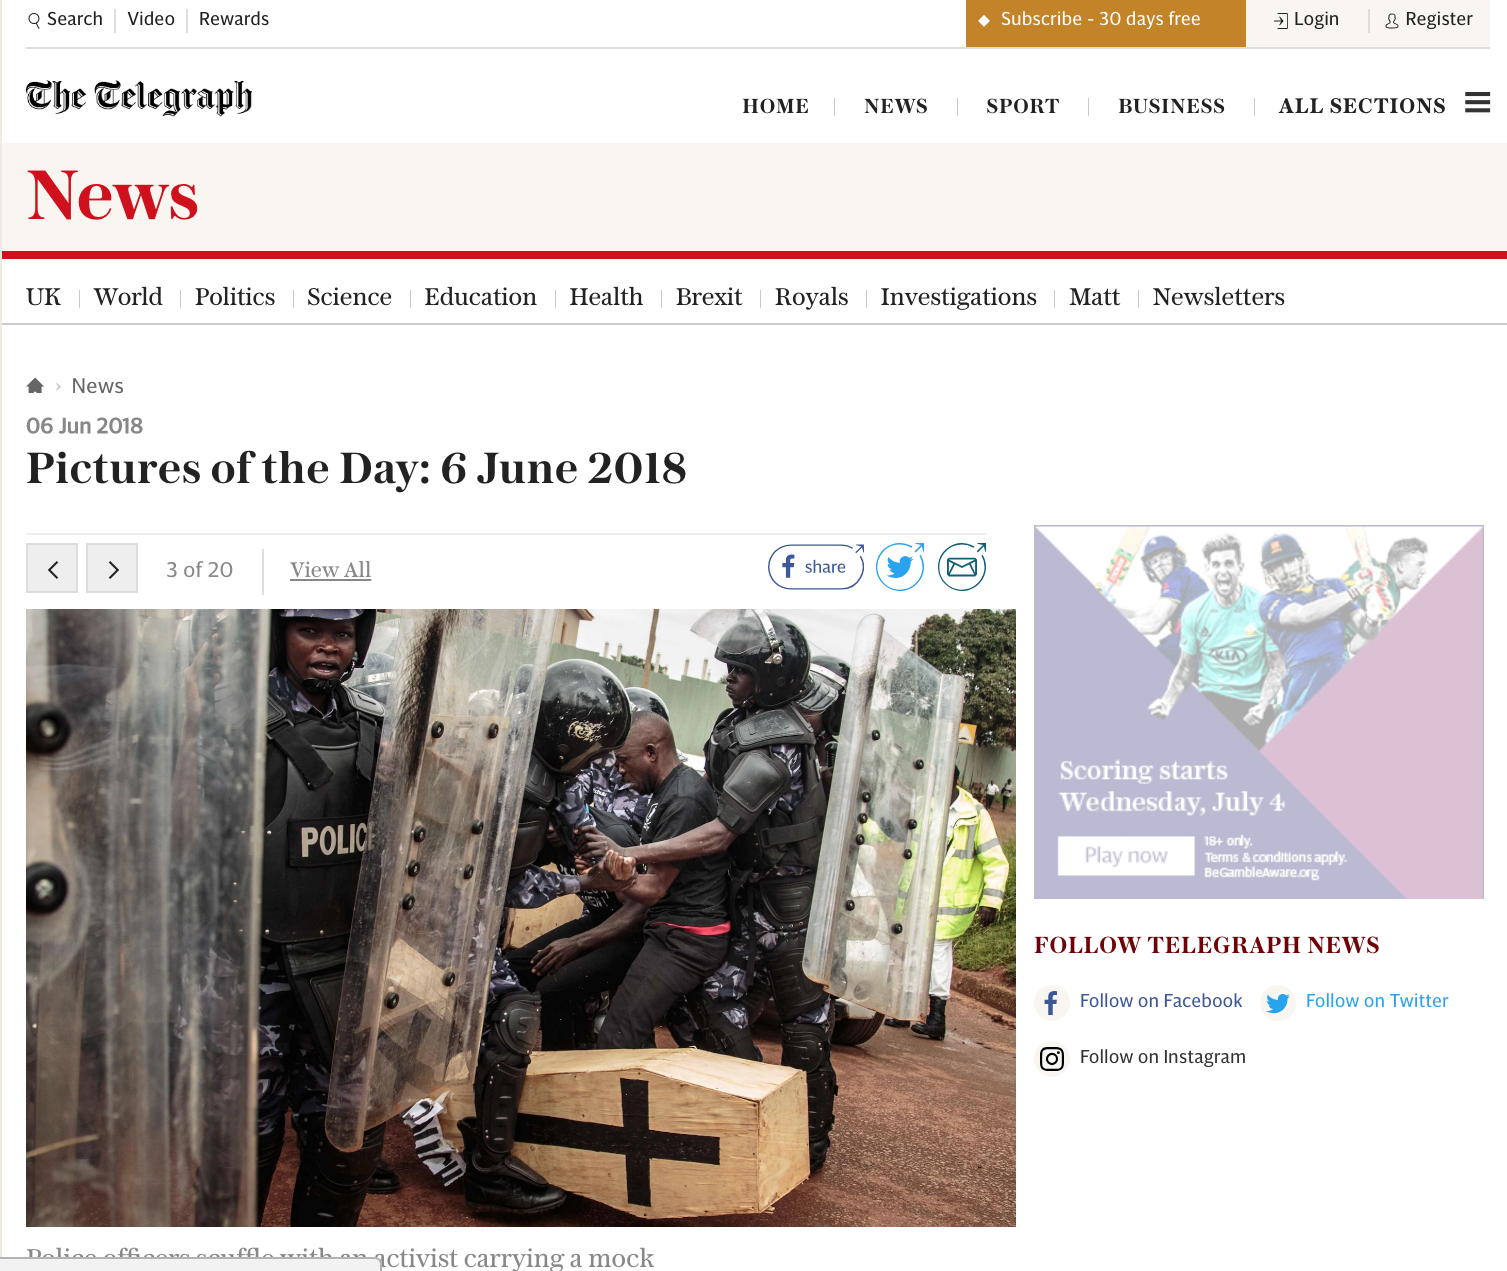 Police scuffle with activists carrying mock coffins in Kampala // The Telegraph // 06.2018